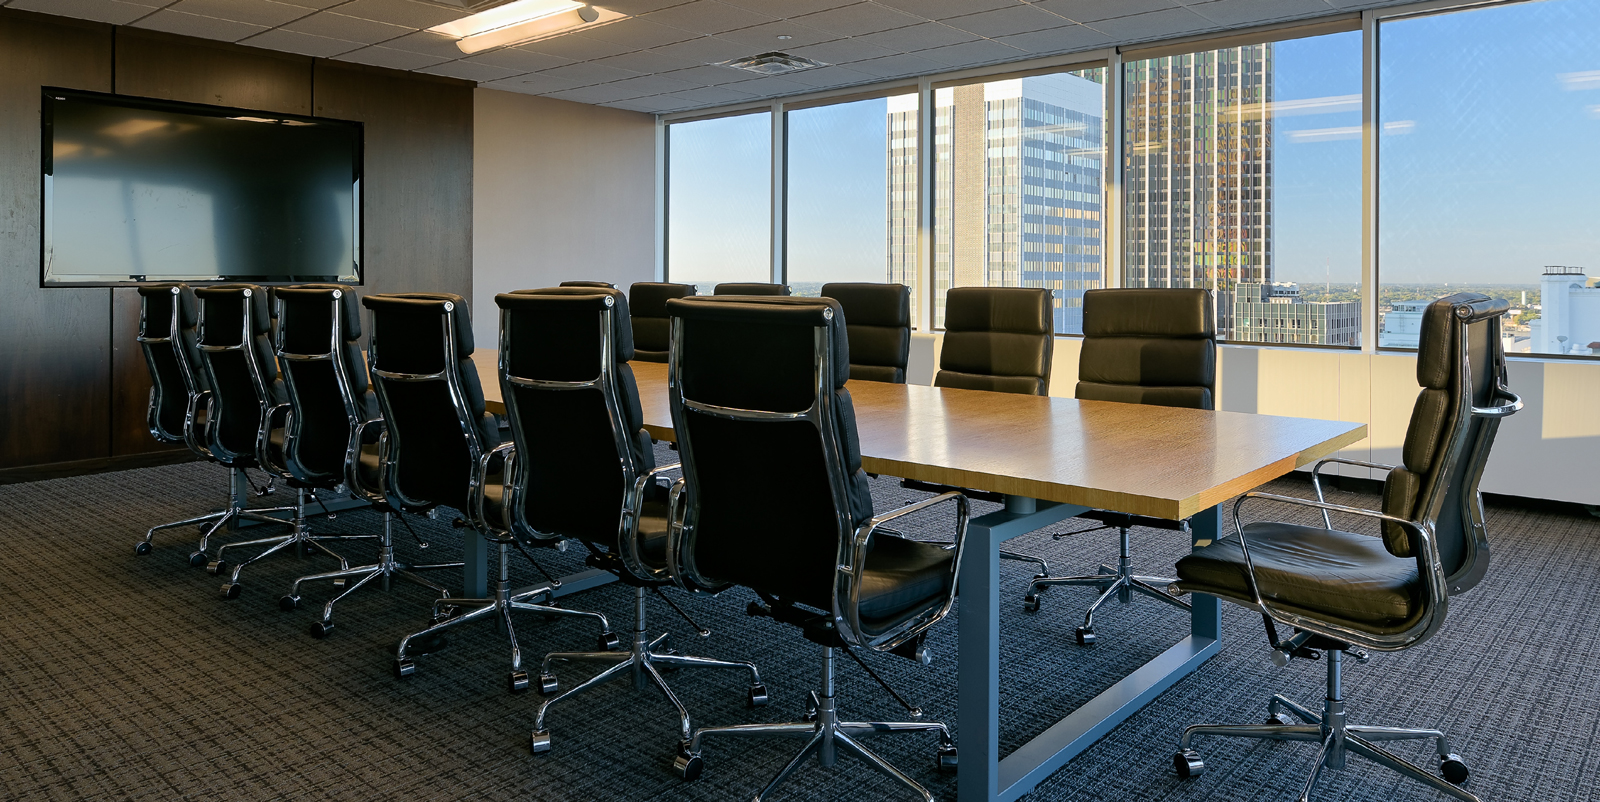 Modern conference room with ample seating and a large flat screen TV, looking out to the city below